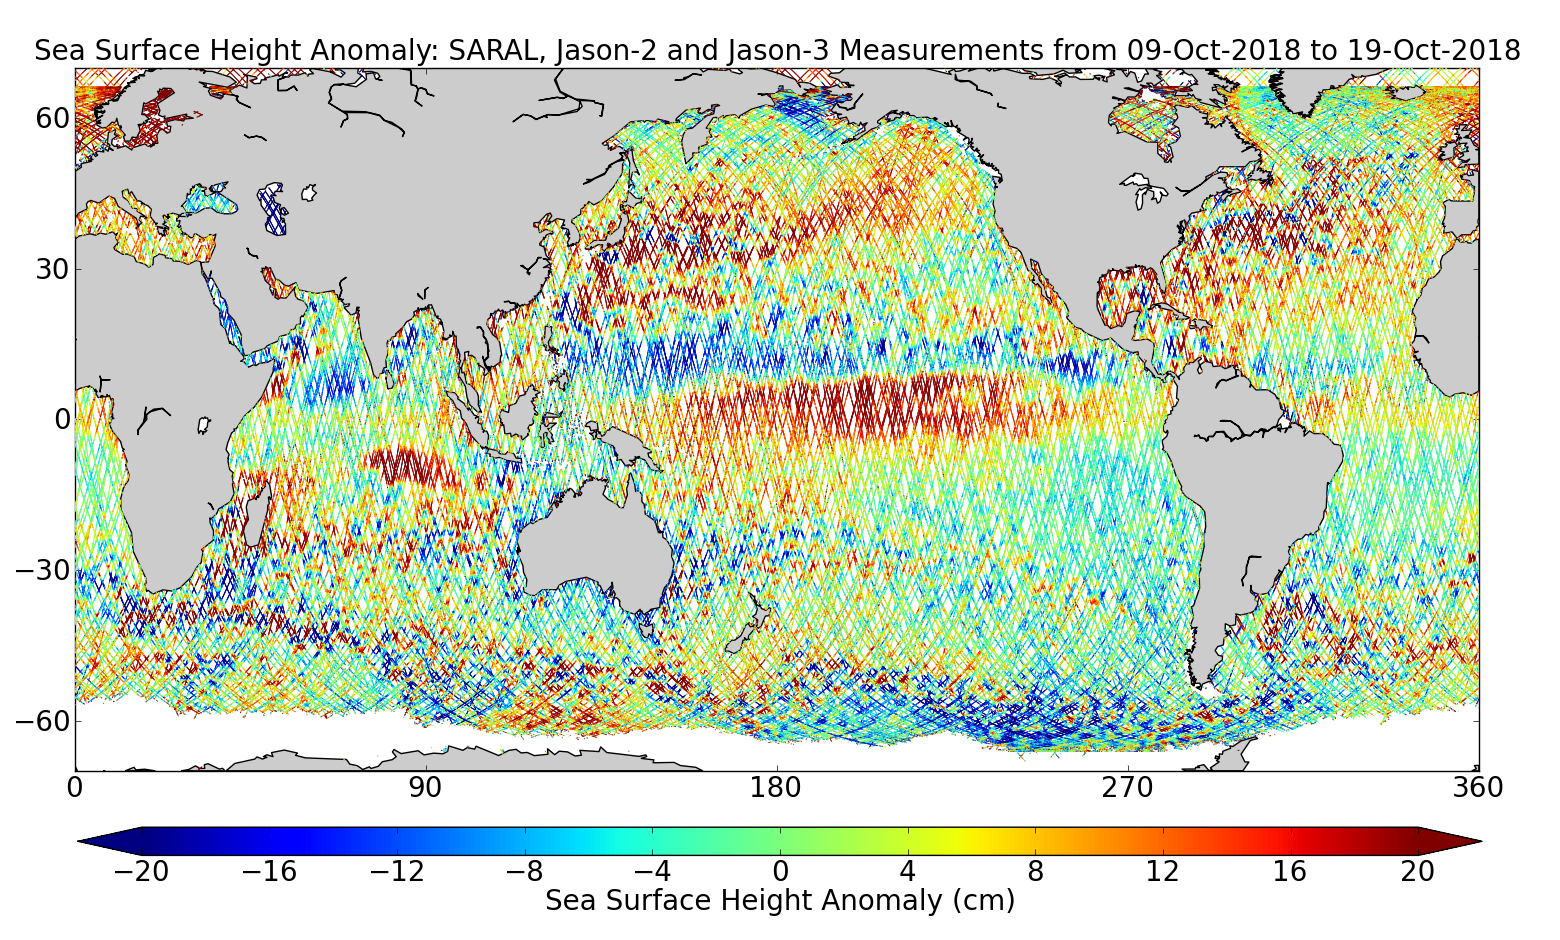 Sea Surface Height Anomaly: SARAL, Jason-2 and Jason-3 Measurements from 09-Oct-2018 to 19-Oct-2018